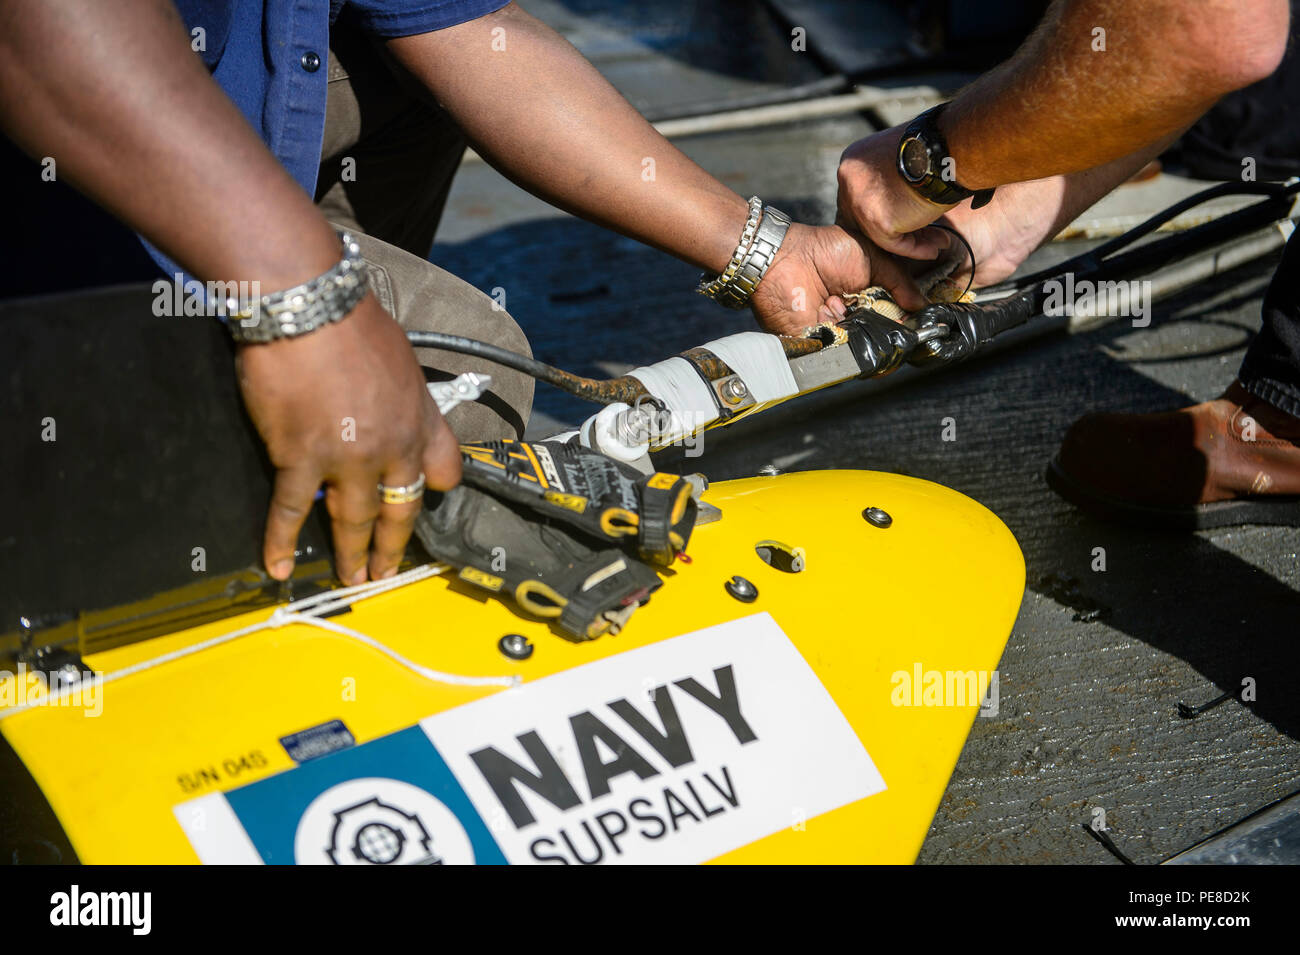 151023-N-RZ218-205   BAHAMAS (Oct. 23, 2015) Contractors with Phoenix International Incorporated prepare a tow pinger locater 25 (TPL 25) for the upcoming salvage mission aboard USNS Apache (T-ATF 172). USNS Apache departed Norfolk, Va., Oct. 19, to begin searching for wreckage from the missing U.S. Flagged merchant vessel El Faro. The ship is equipped with several pieces of underwater search equipment, including a voyage data recorder locator, side-scan sonar and an underwater remote operated vehicle. The Navy's mission will be to first locate the ship and, if possible, to retrieve the voyage - Stock Image